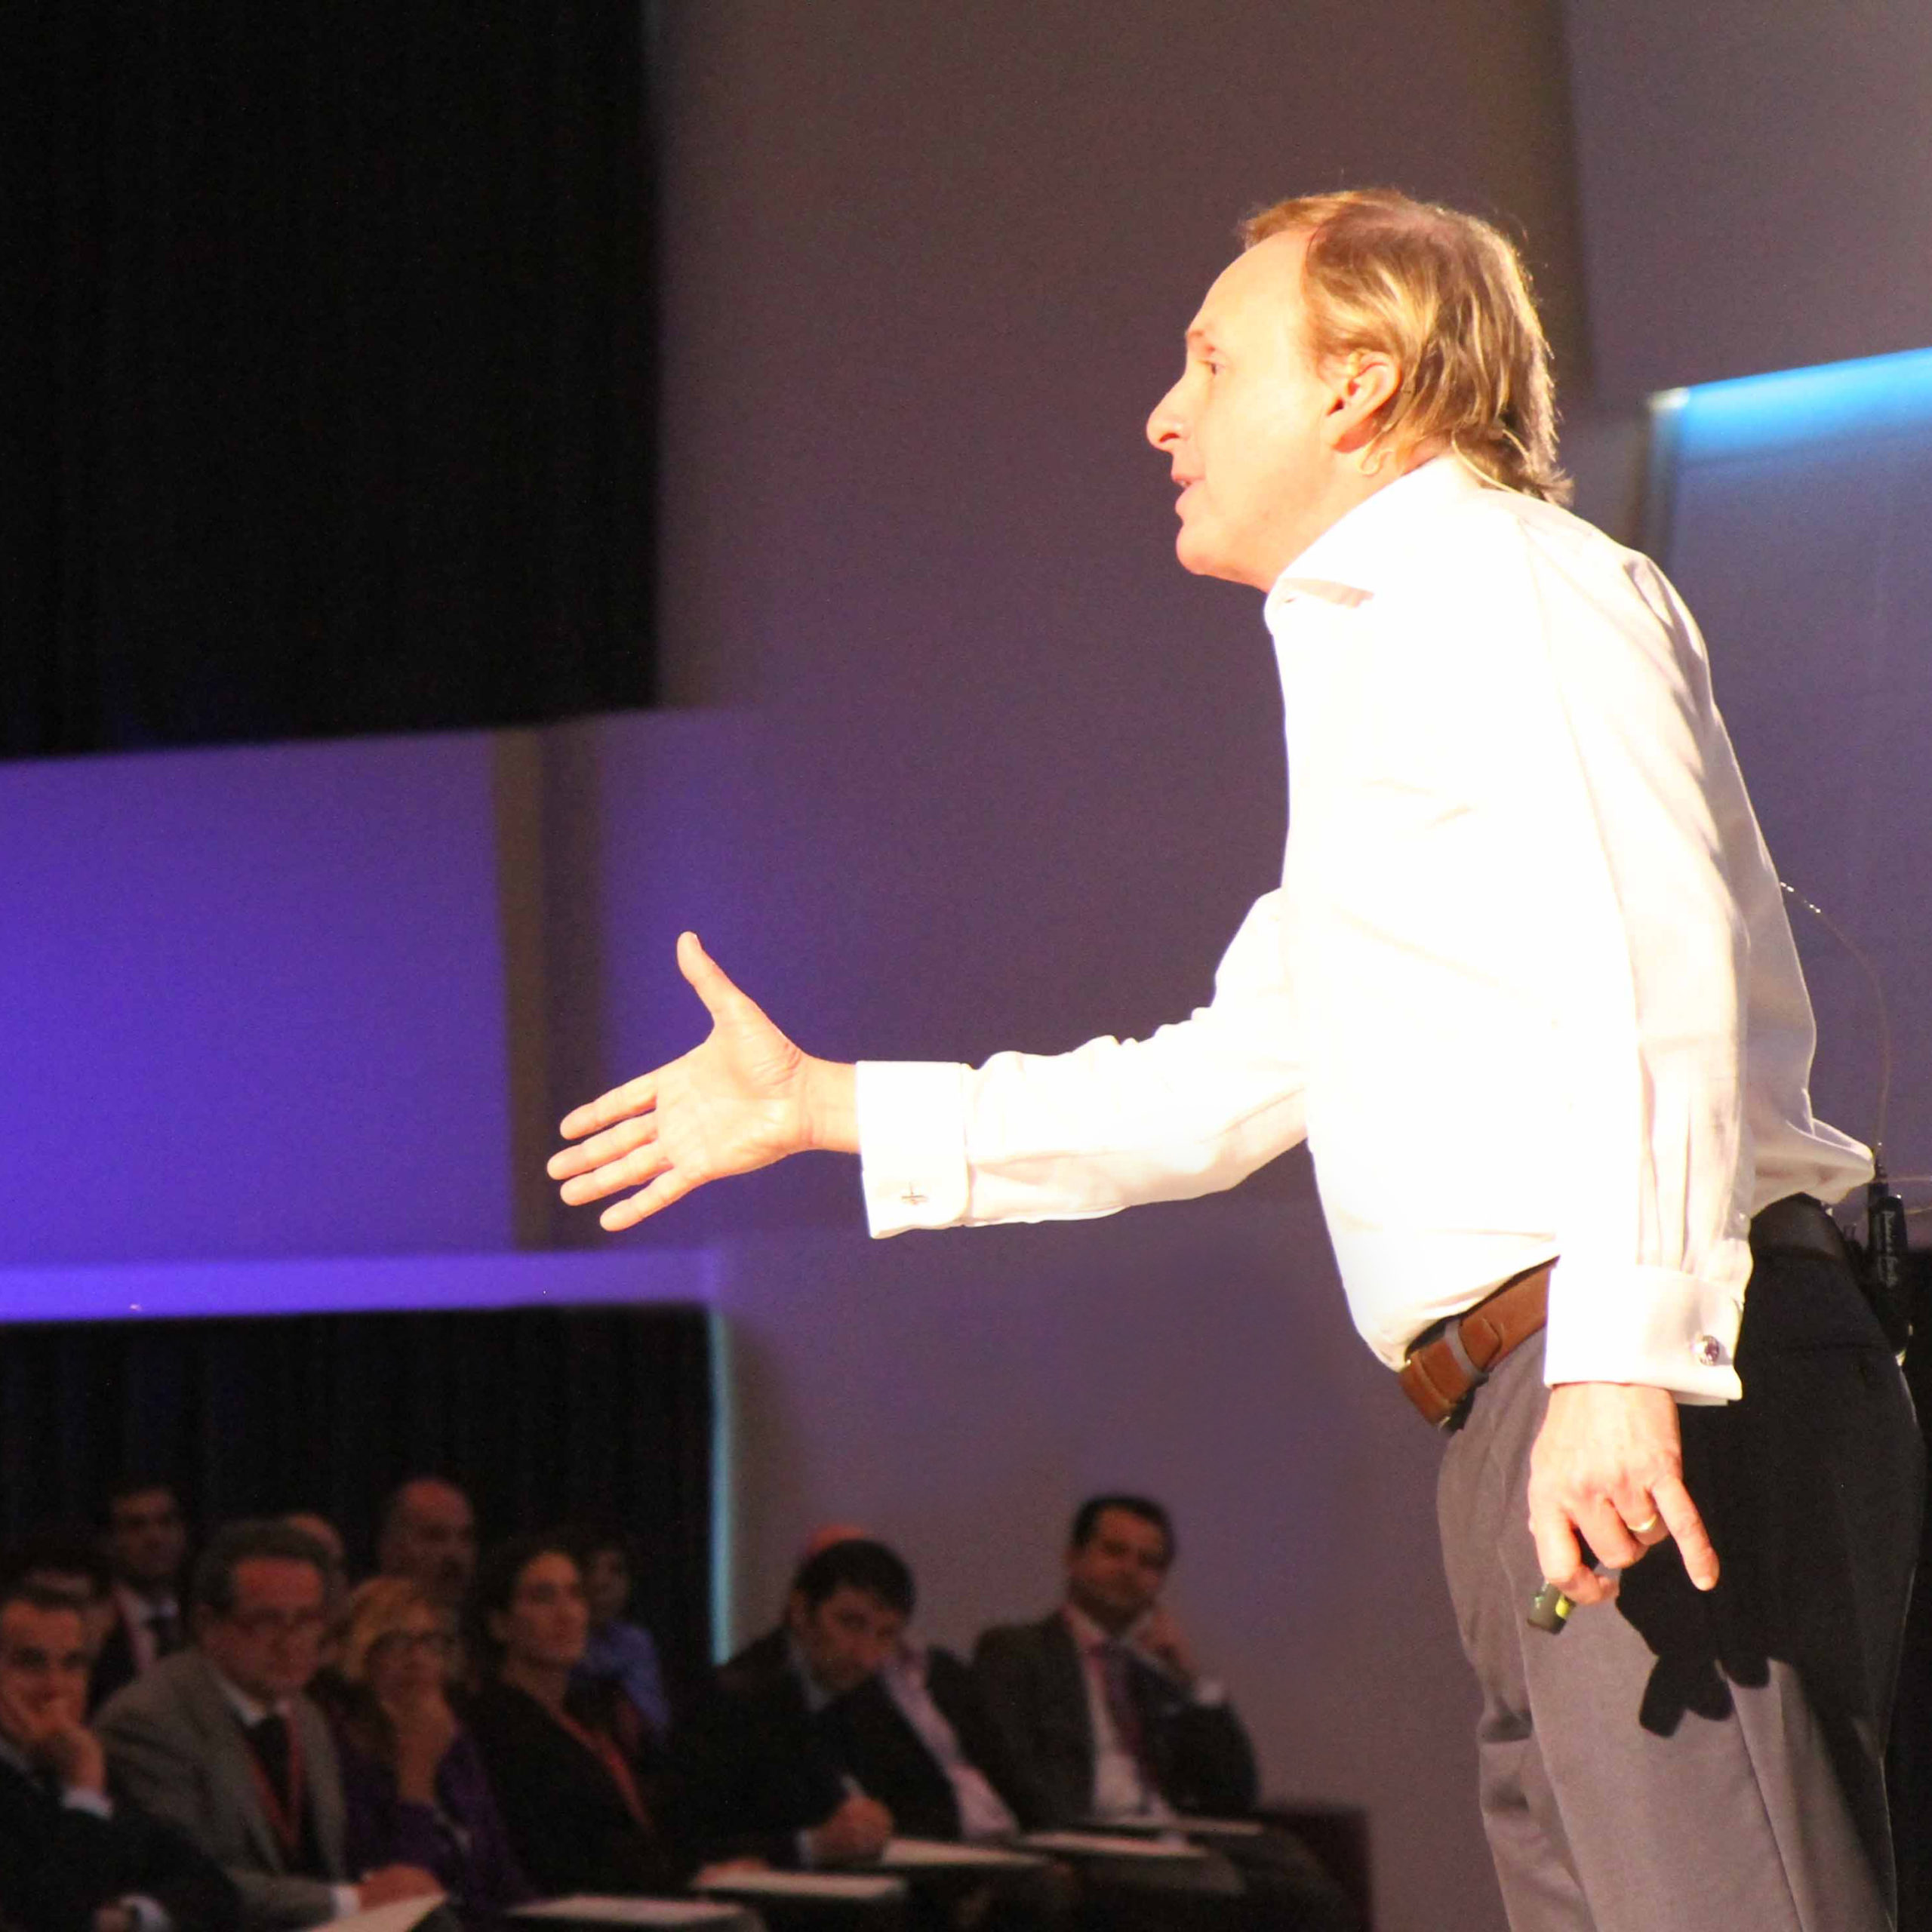 corporate training sq Paul Boross on stage withwith audienceSeminario Intensivo 2012 Paul Boross 1 scaled